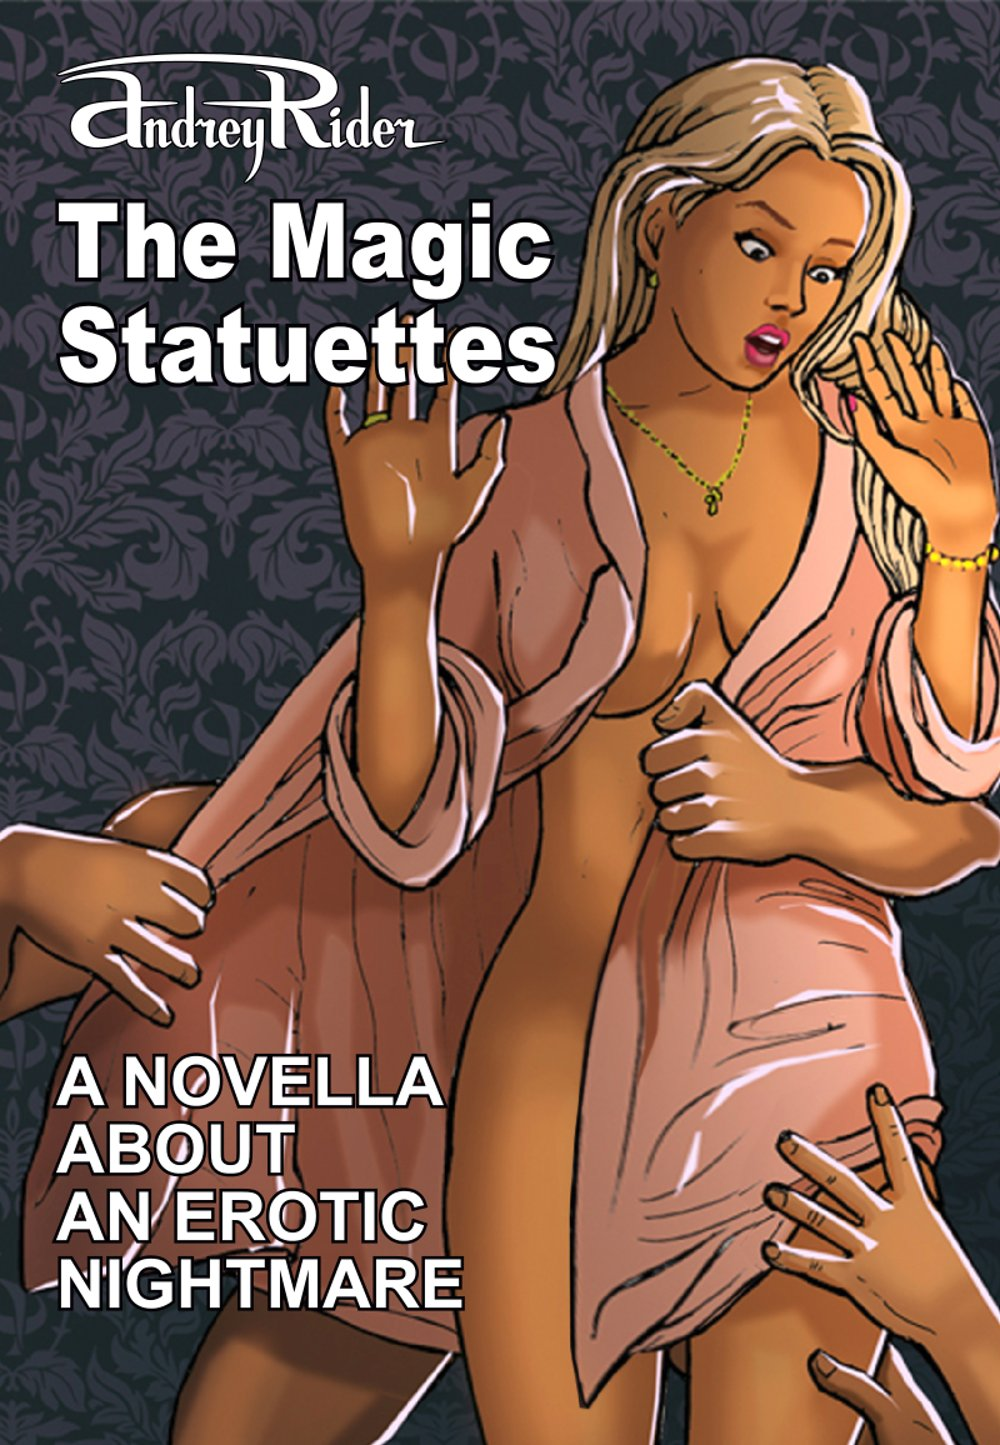 The Magic Statuettes, a Novella